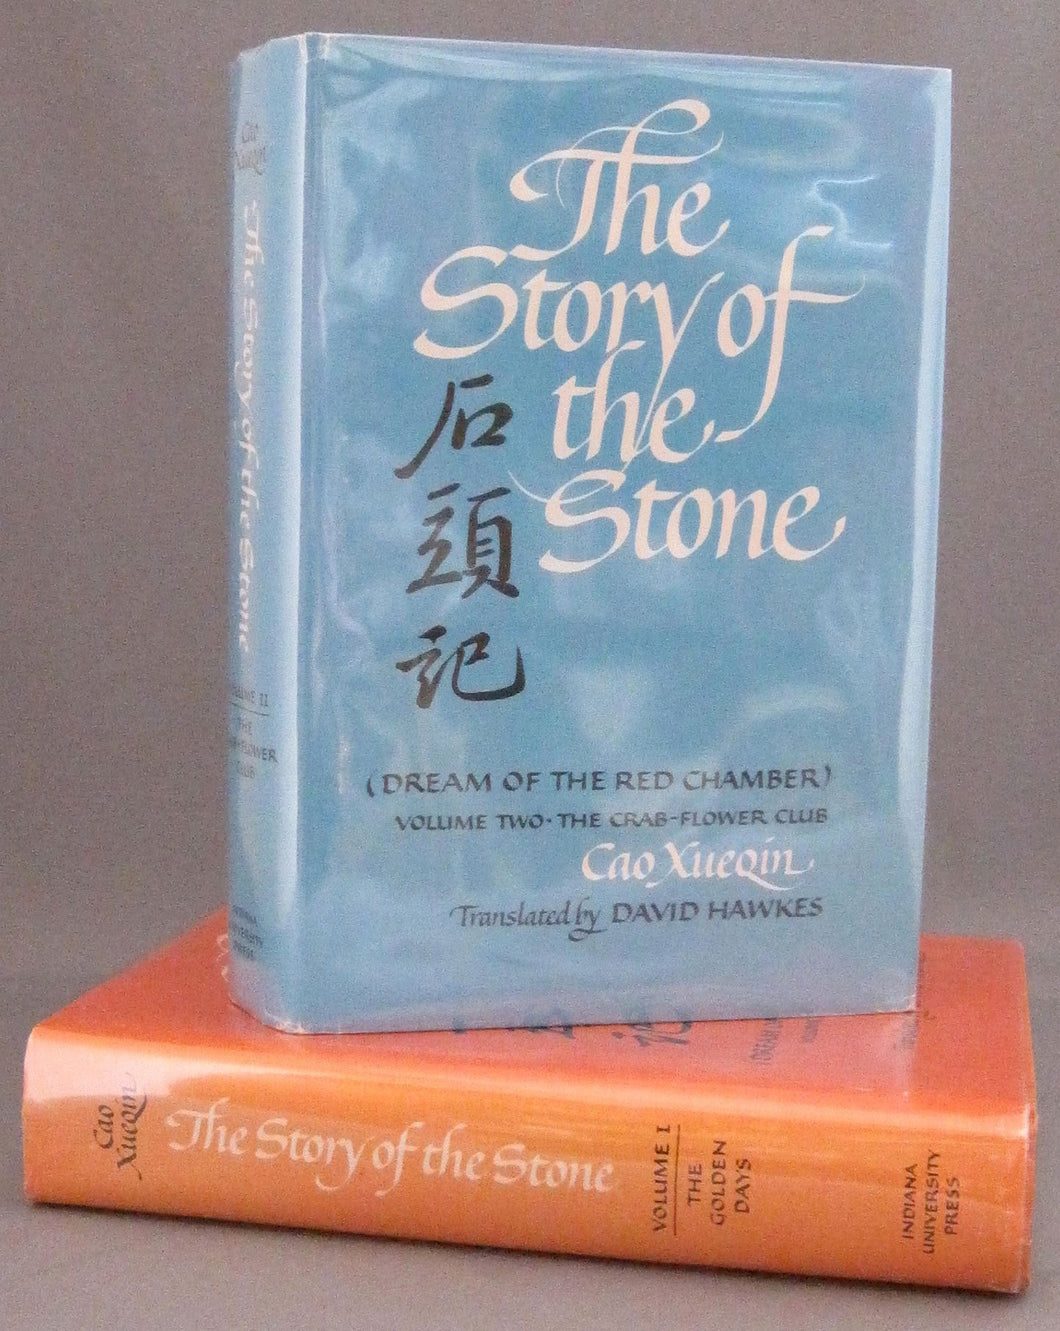 The Story of the Stone. A Novel in Five Volumes. Volume One: The Golden Days. Volume Two: The Crab-Flower Club